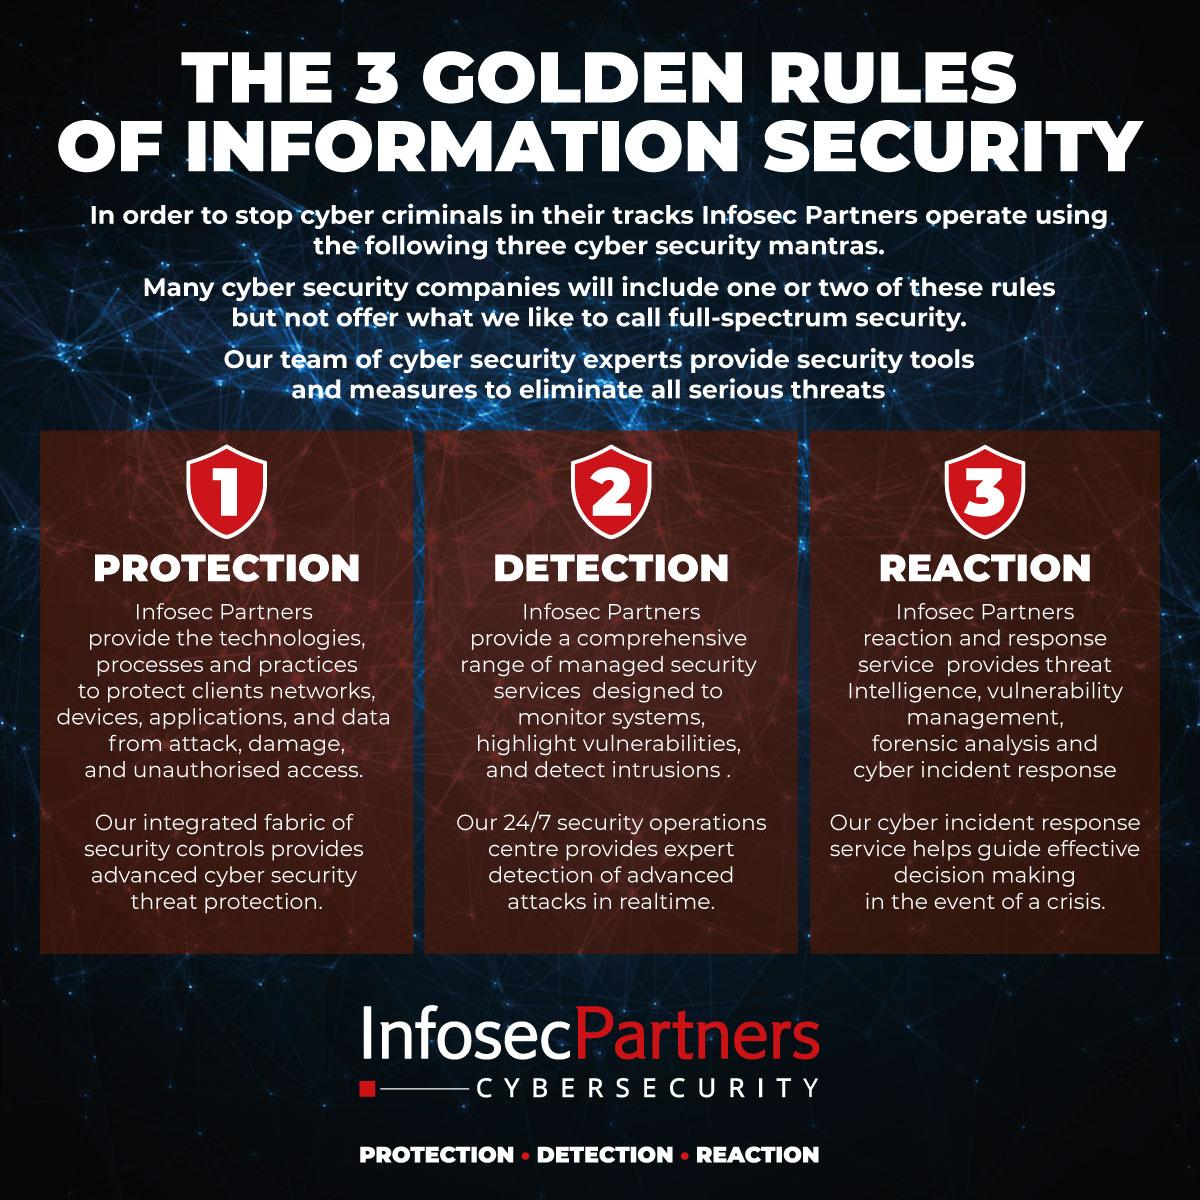 3 Golden Rules of Information Security - Protection, detection & Reaction